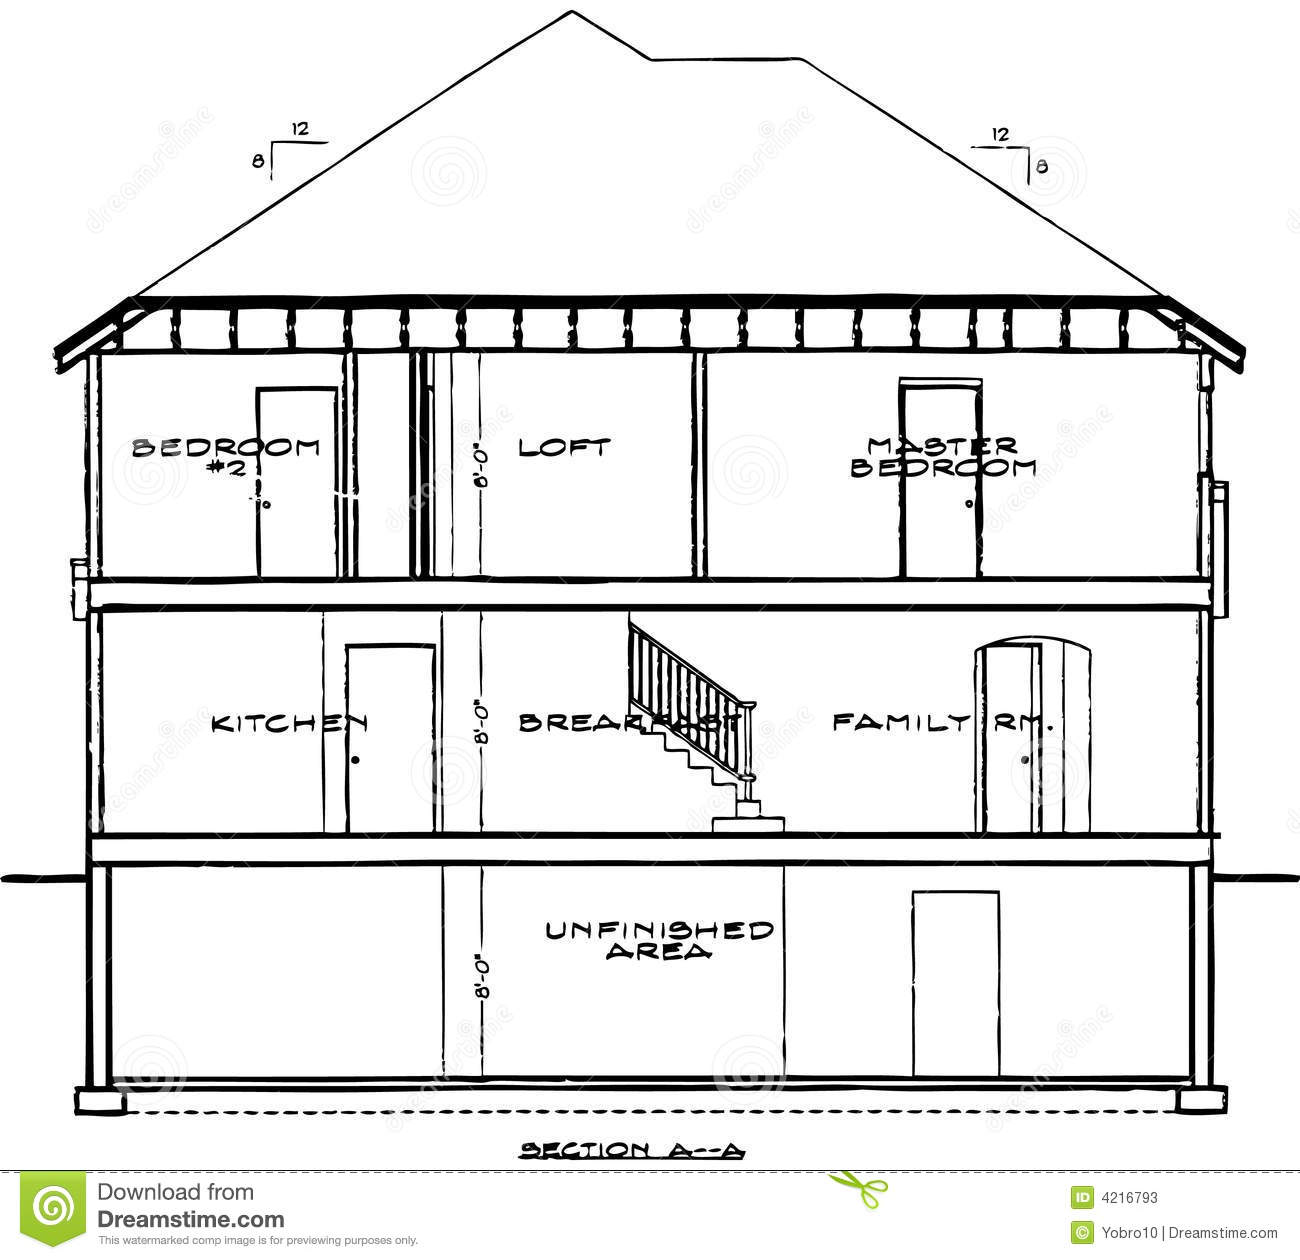 House blueprint stock photos image 4216793 for Blueprint homes